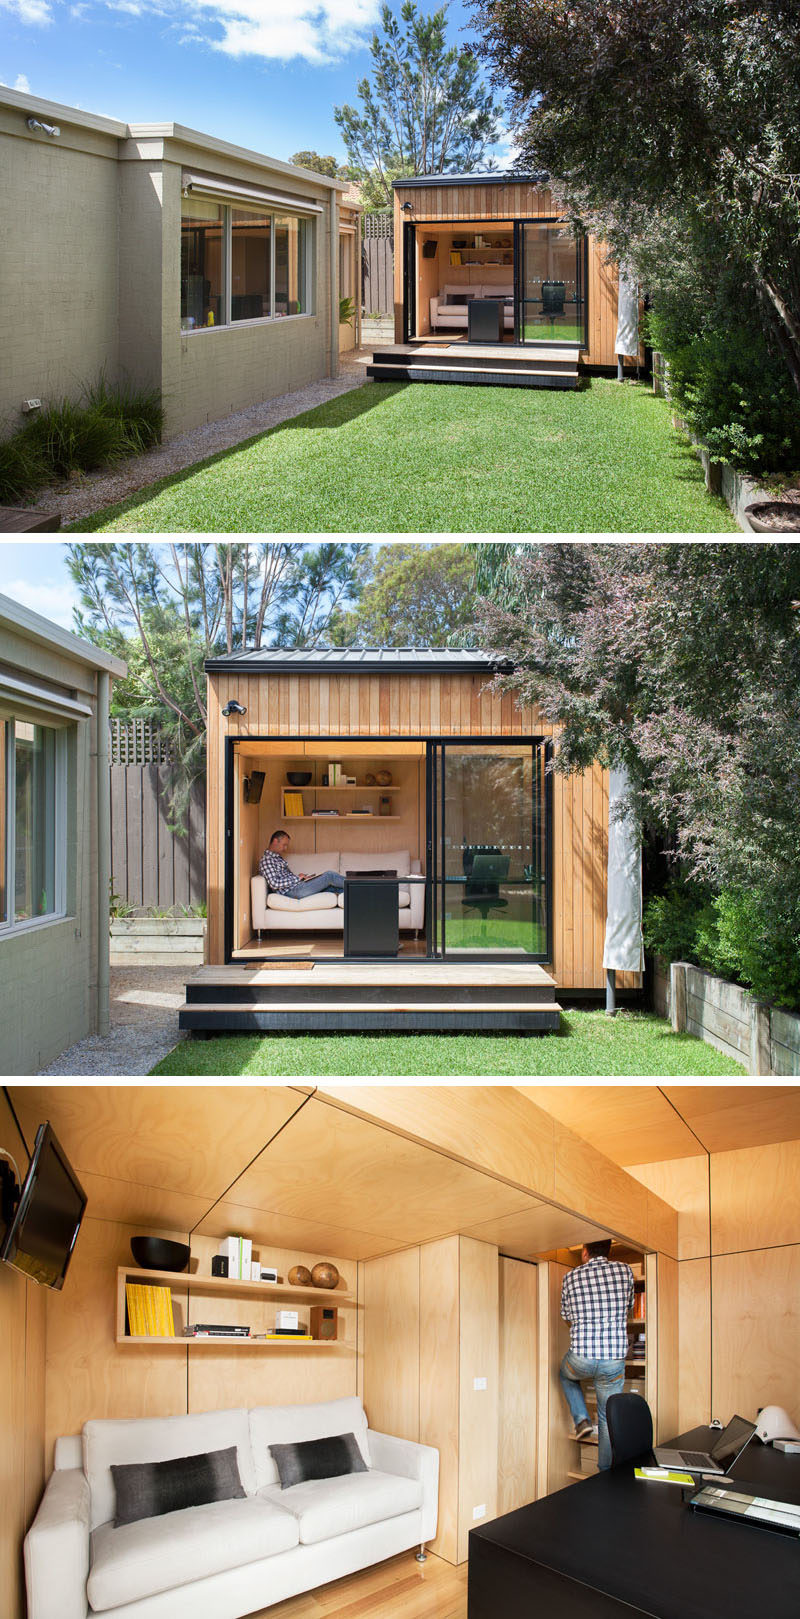 This Small Backyard Studio Has Been Carefully Designed To Accommodate A  Couch, A Work Space, And A Lofted Sleeping Area To Create The Ultimate  Backyard ...